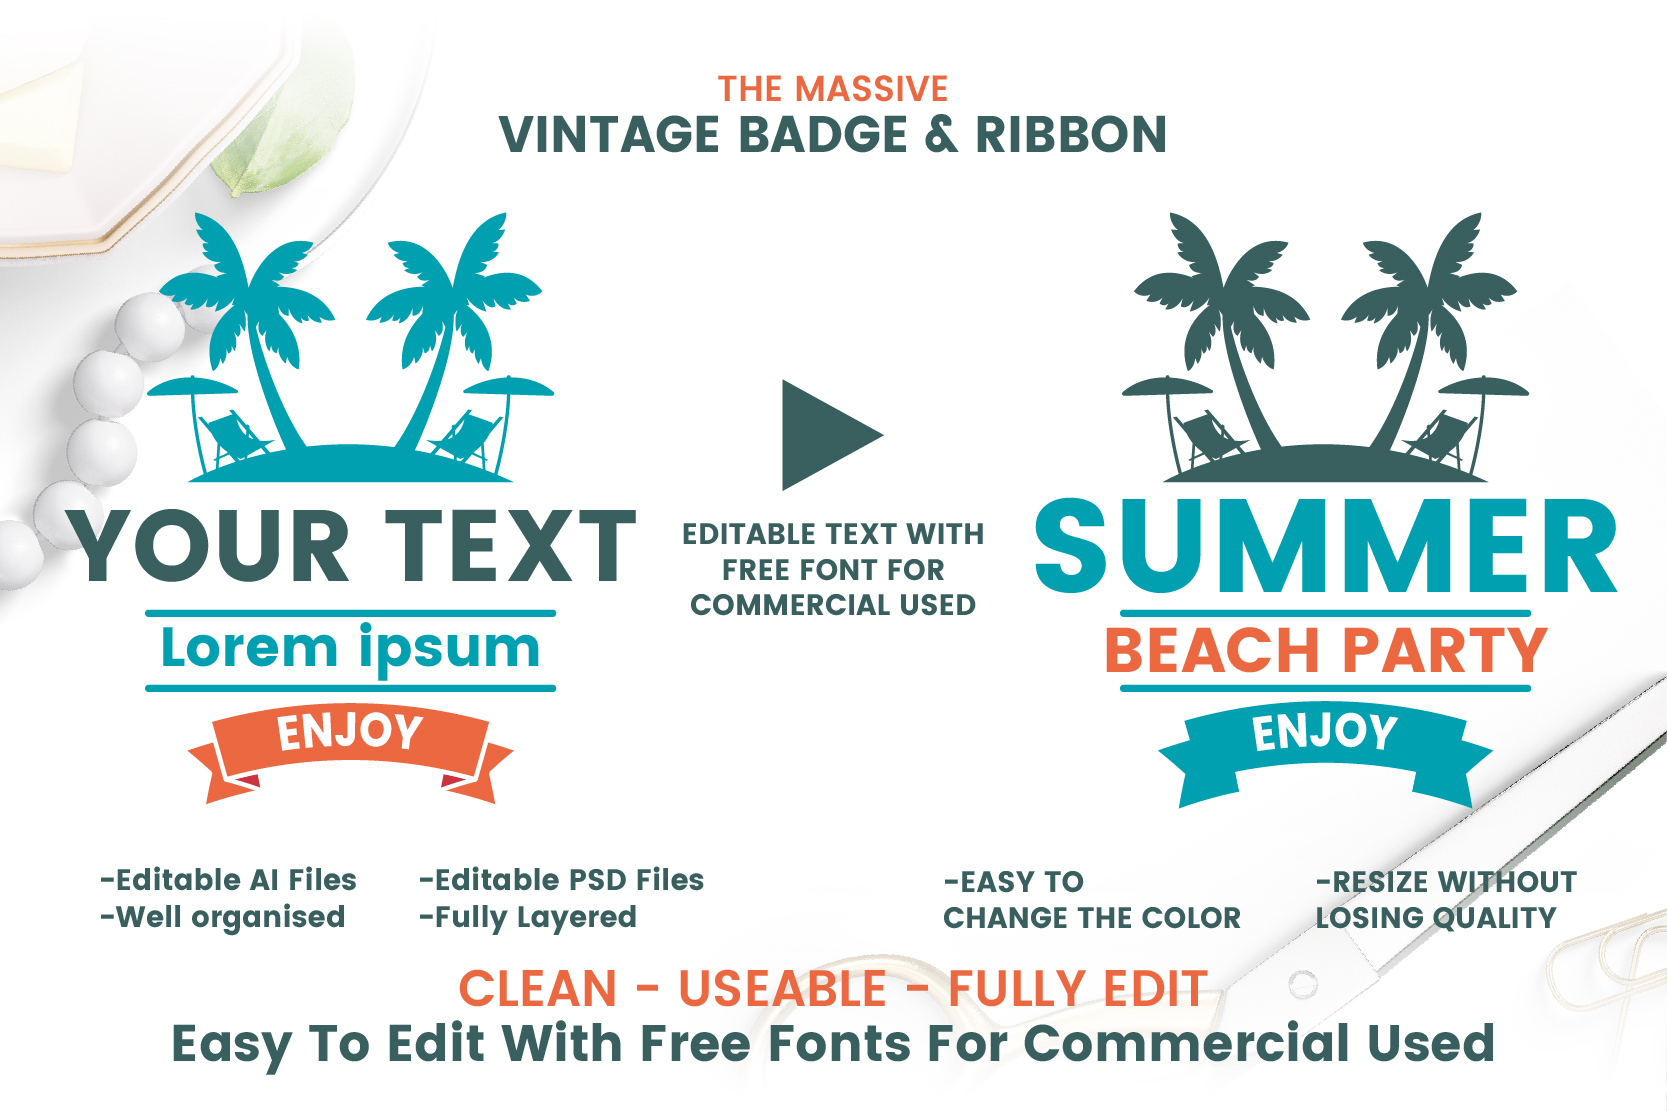 63 SUMMER VINTAGE BADGE & RIBBON example image 3